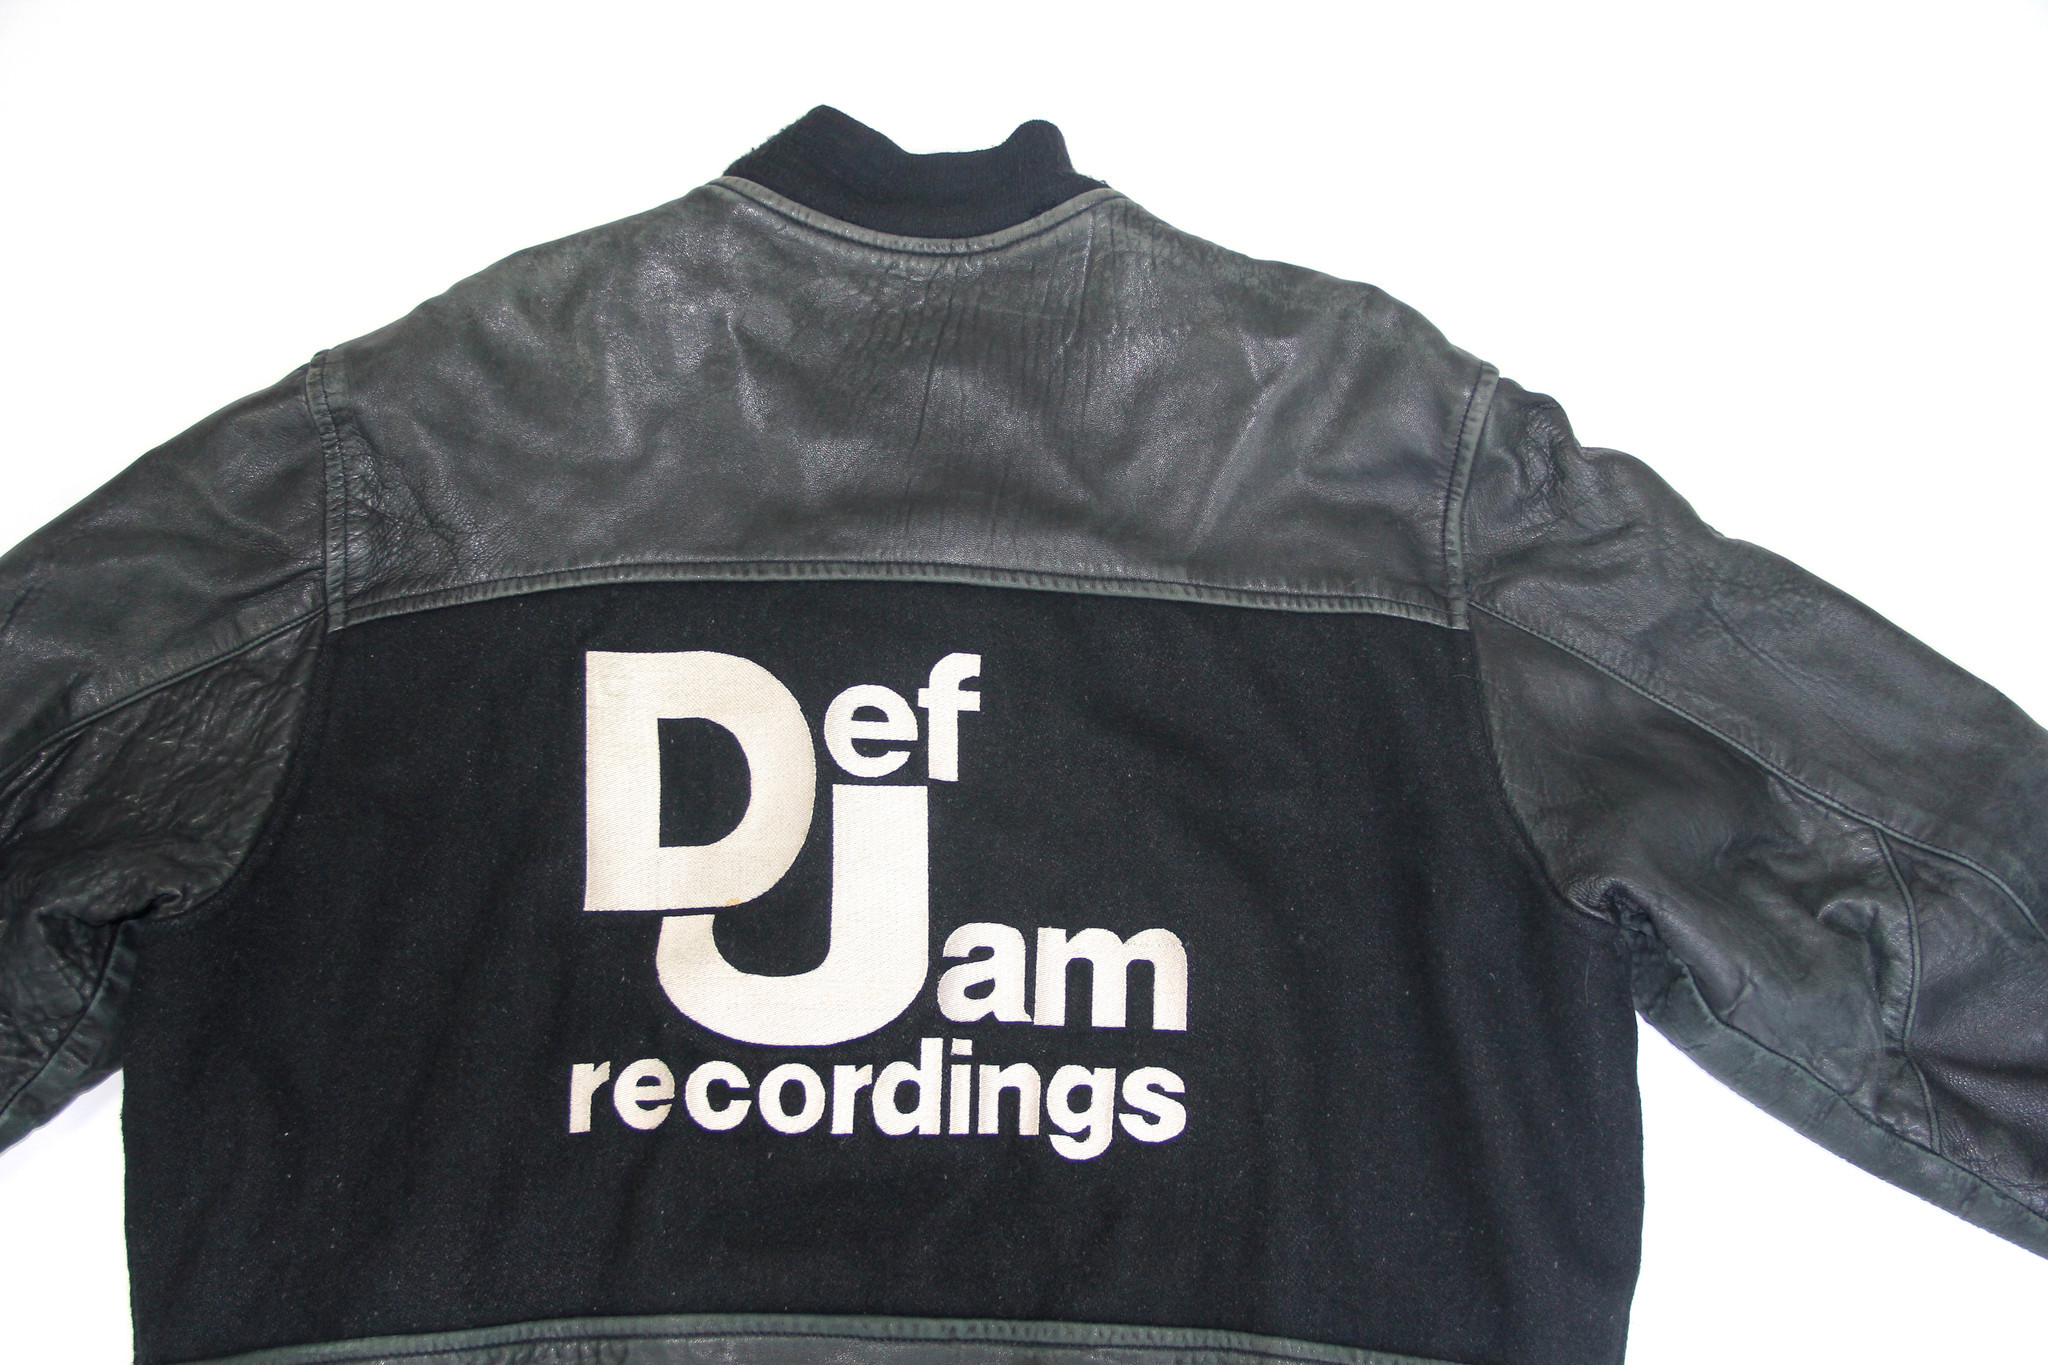 This Def Jam leather varsity jacket is one of the pieces on offer at the Procell Depop collaborative pop-up in Silver Lake.